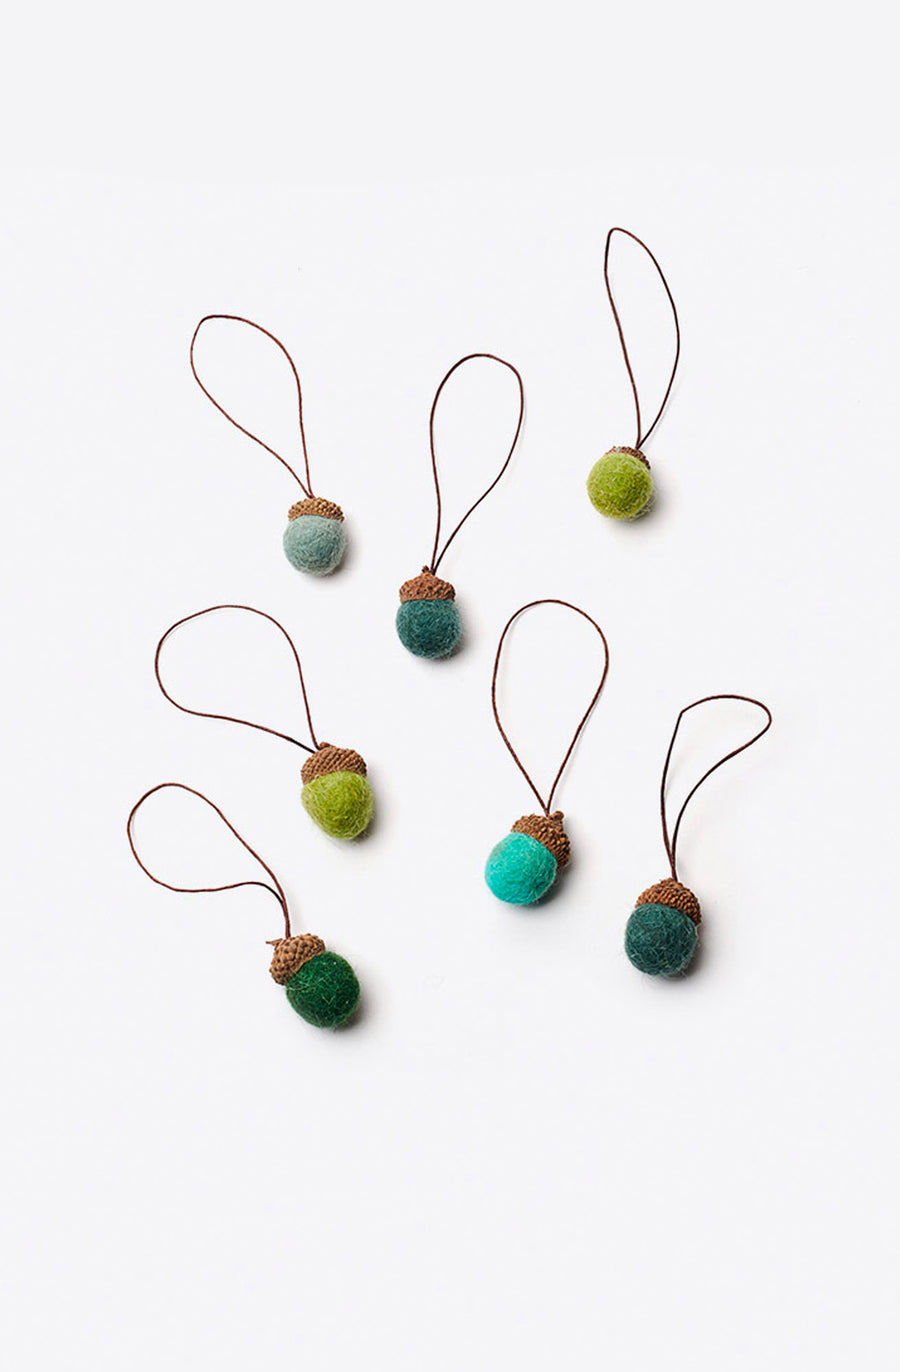 Green Wildwool Felt Acorn Ornament-multi